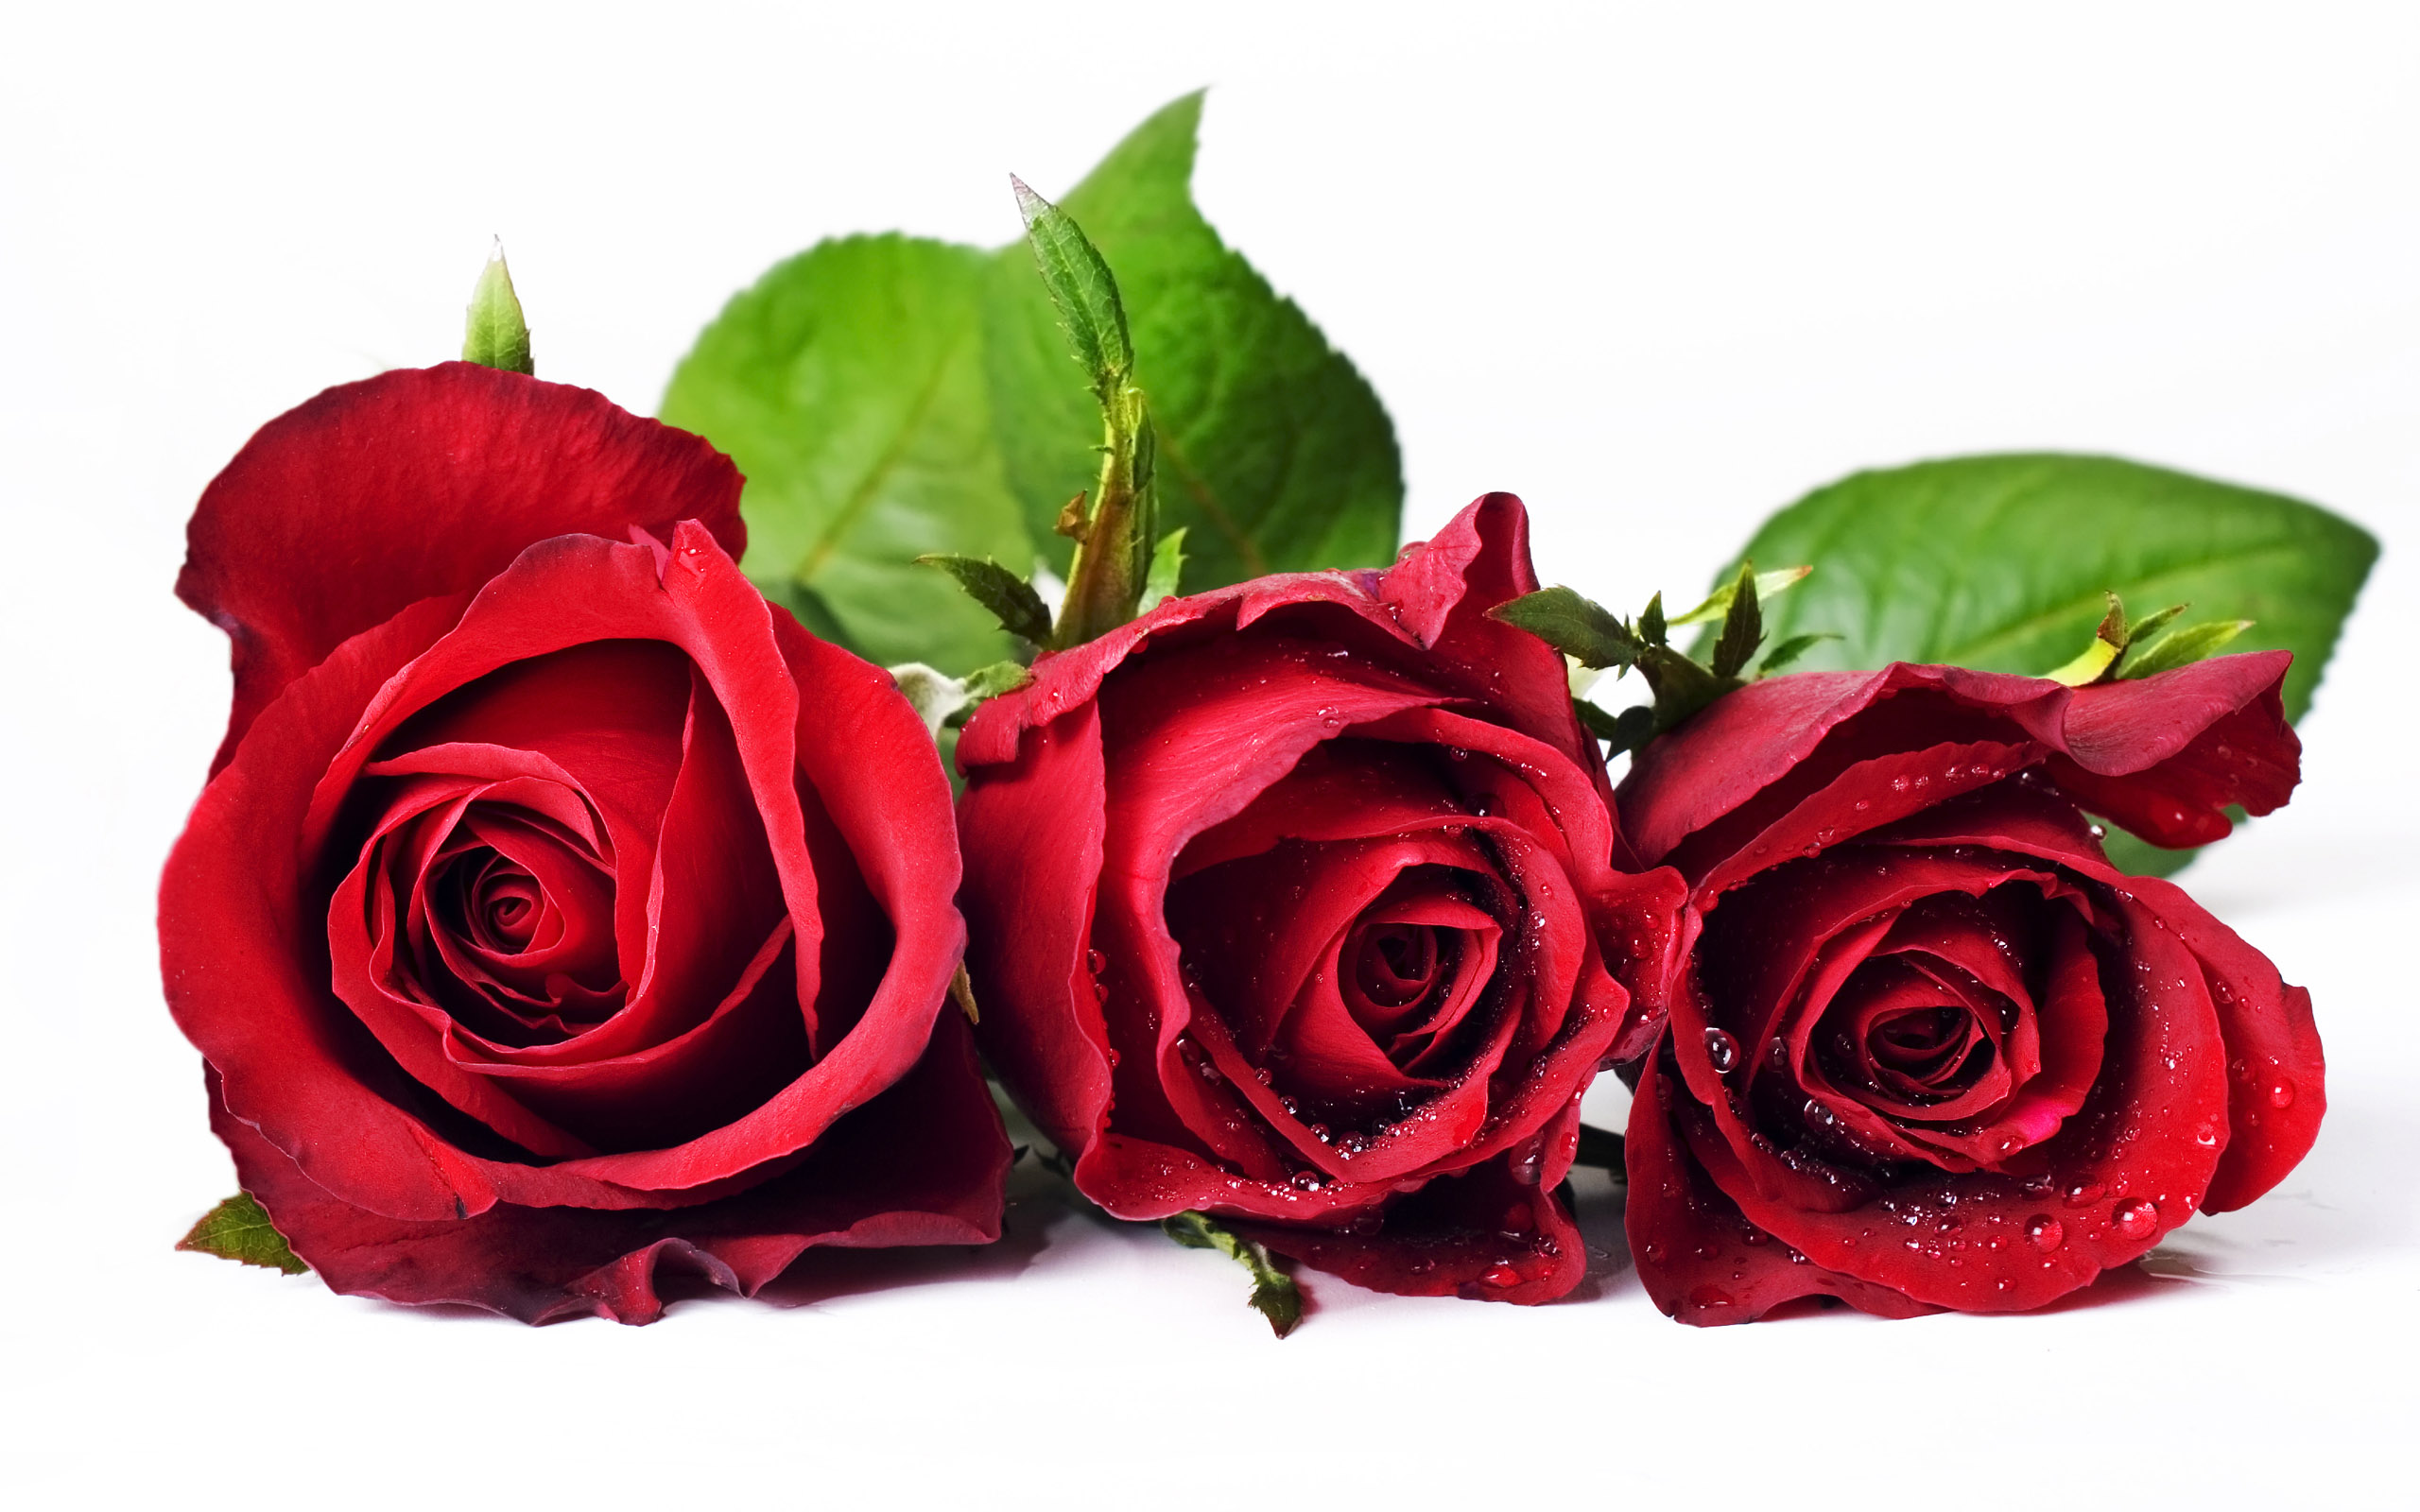 Rose Flowers Wallpapers Free Download Hd Pictures 4 HD Wallpapers